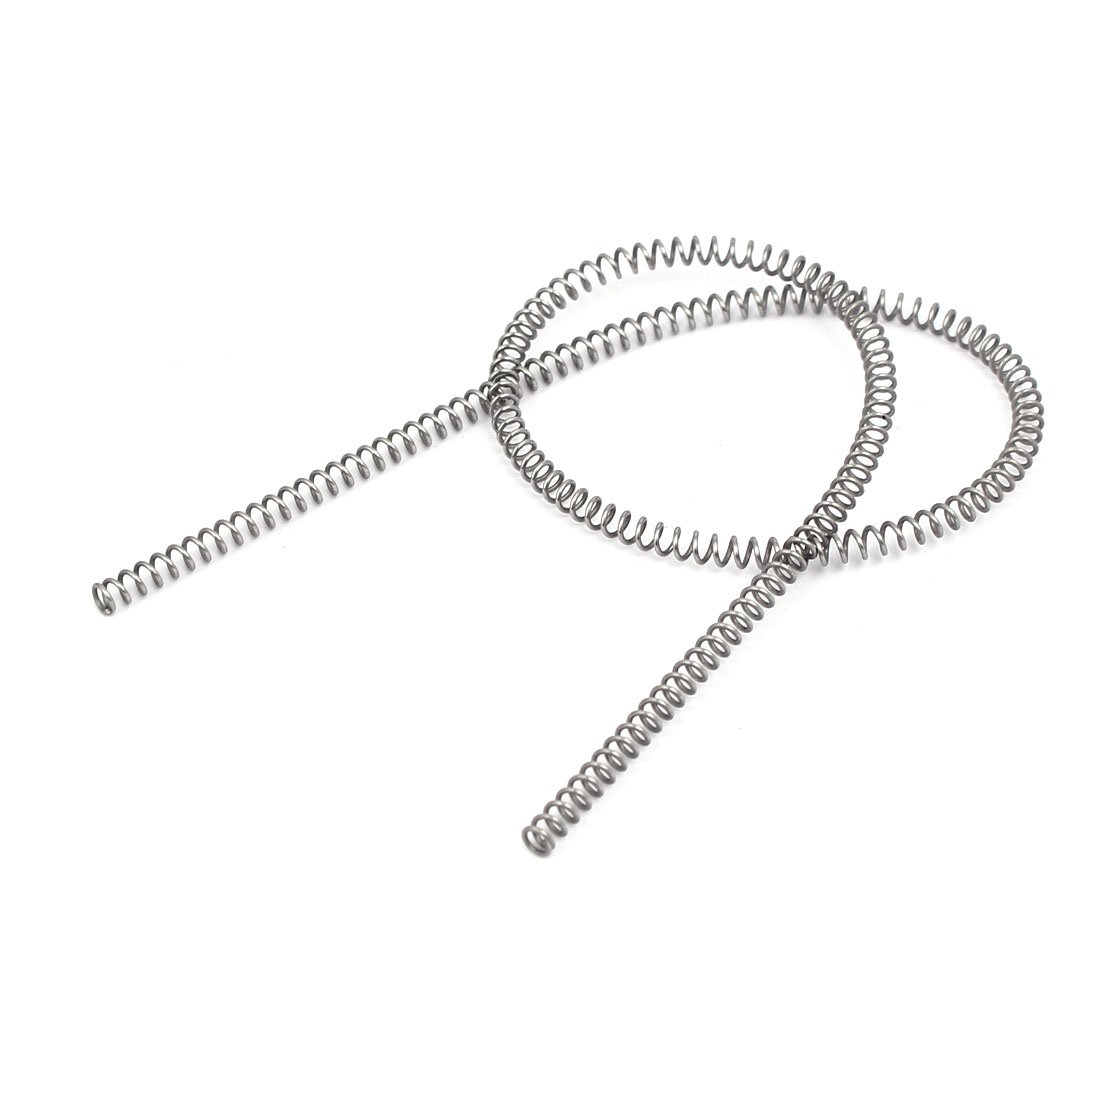 uxcell Compression Spring,304 Stainless Steel,3mm OD,0.5mm Wire Size,305mm Free Length,Silver Tone